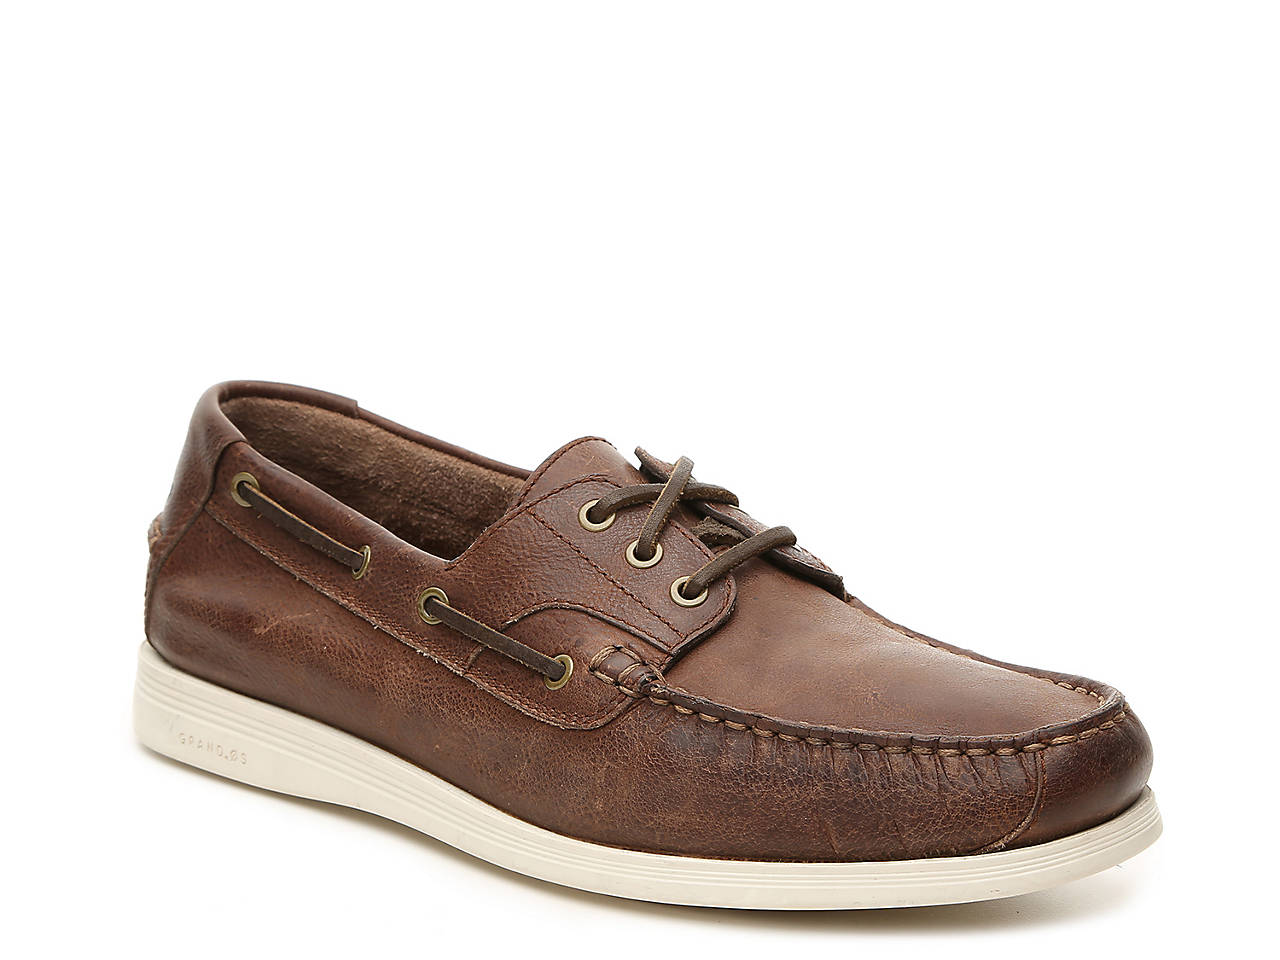 c62b86fd2fd Cole Haan Harpswell Boat Shoe Men s Shoes